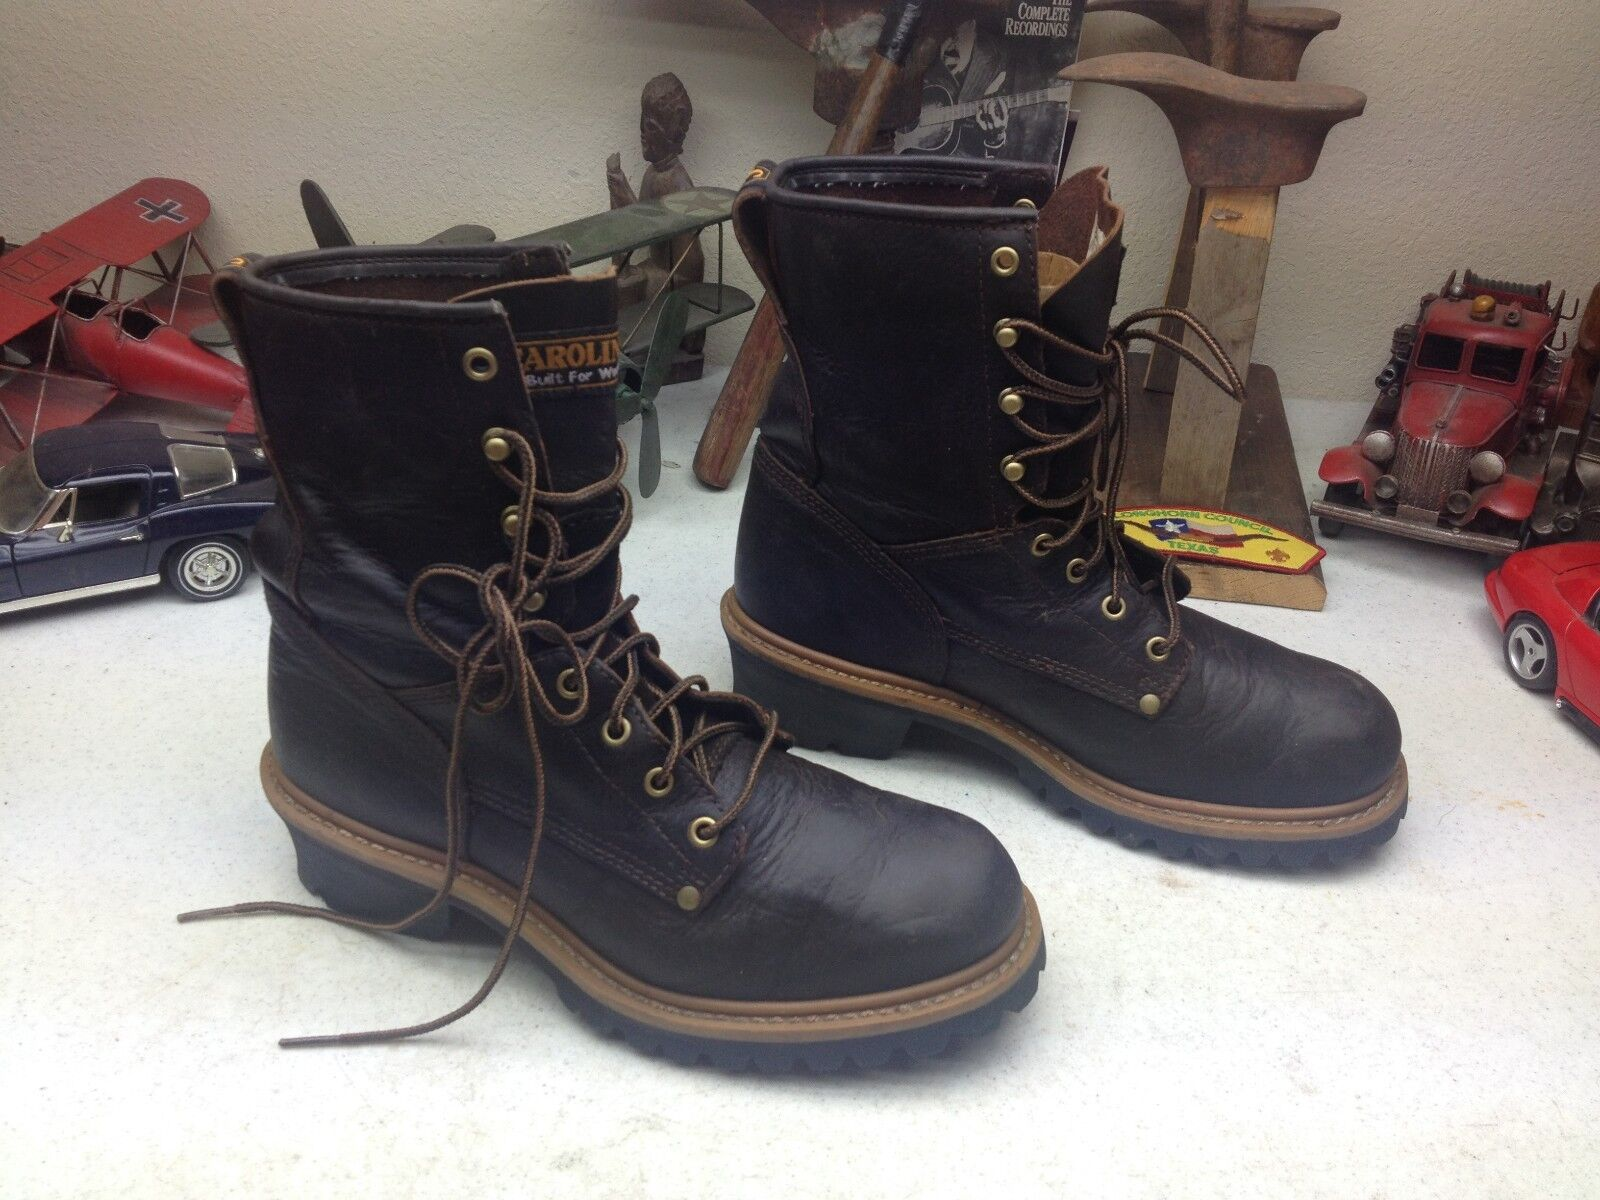 CAROLINA BROWN LEATHER CHORE LACE UP ENGINEER BOSS LOGGER WORK CHORE LEATHER PACKER BOOTS 9 D edae1c